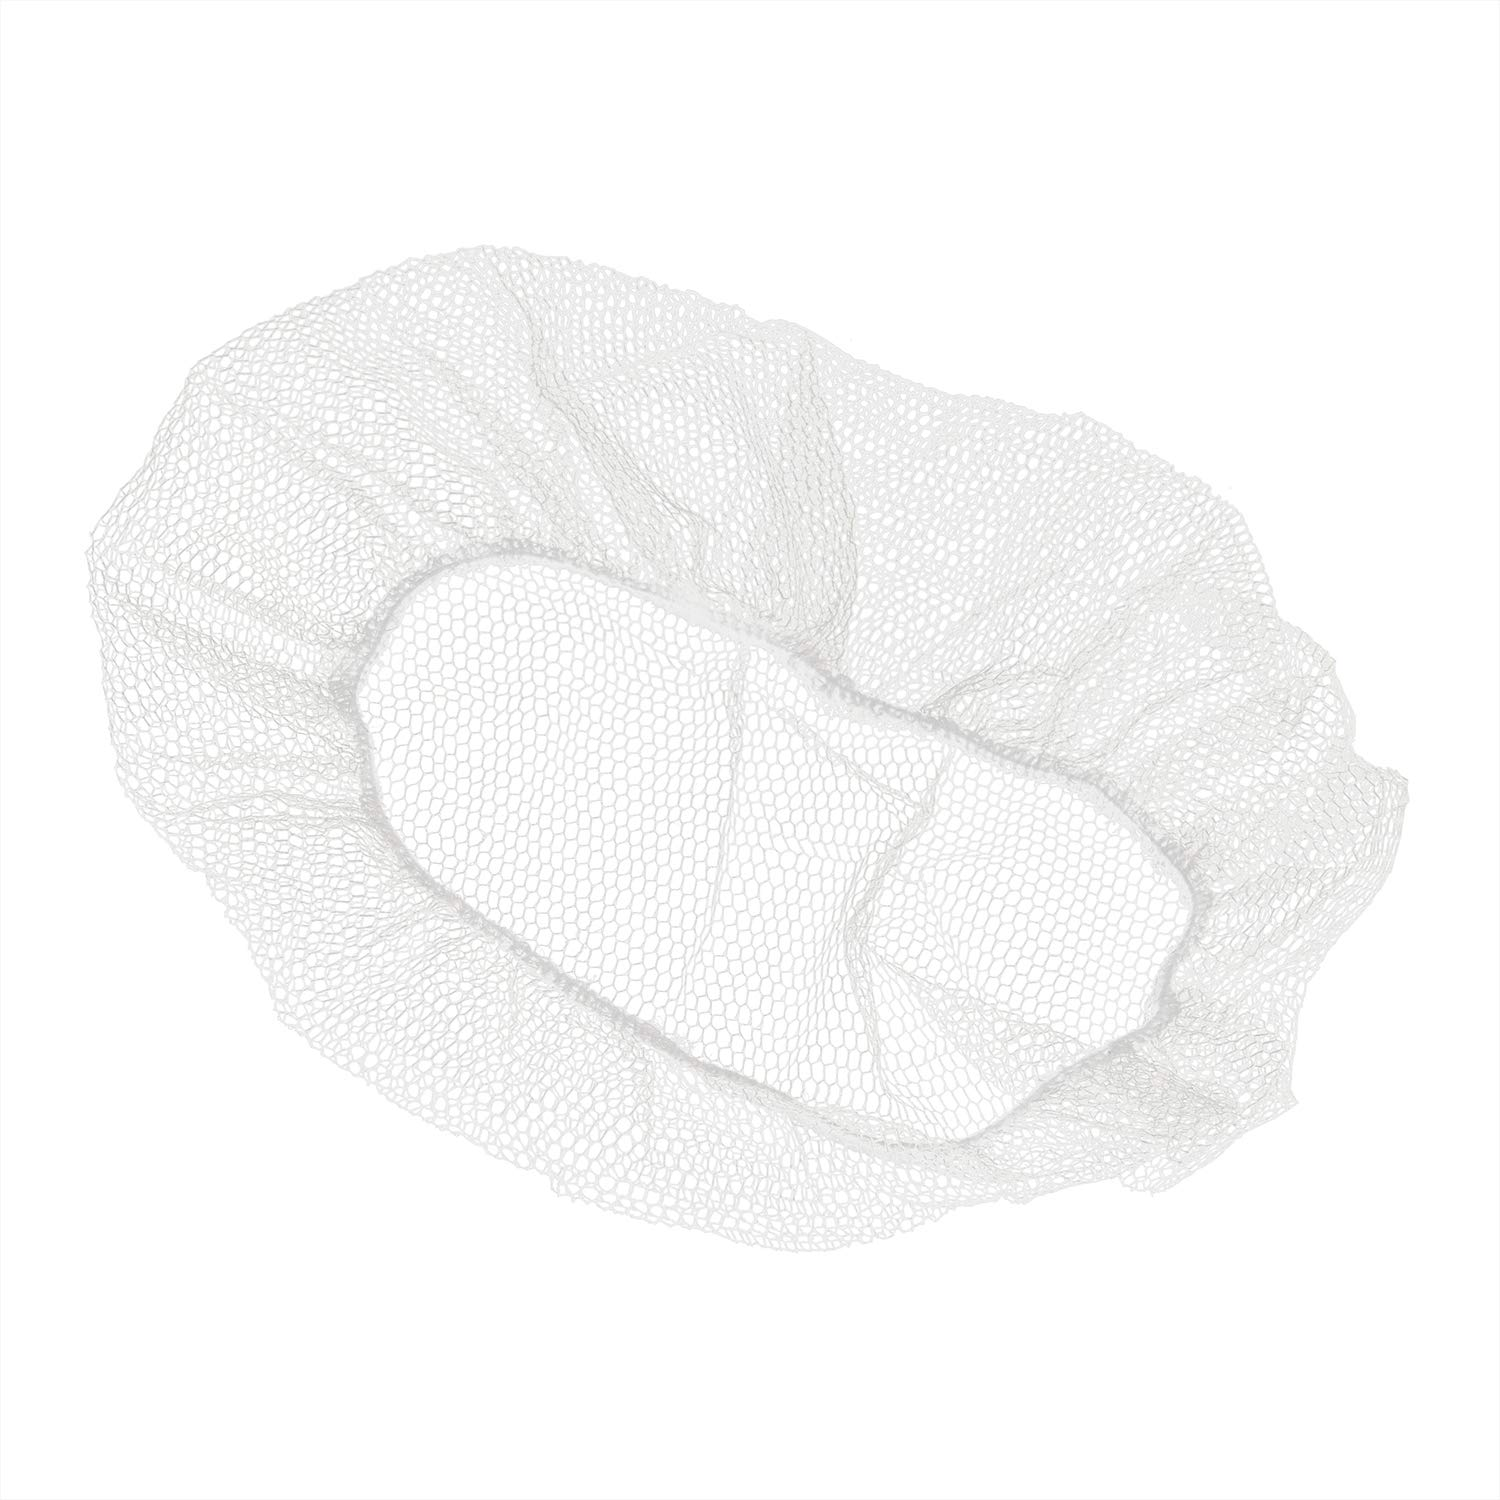 Royal 24'' White Koronet, Disposable and Latex Free, Case of 1000